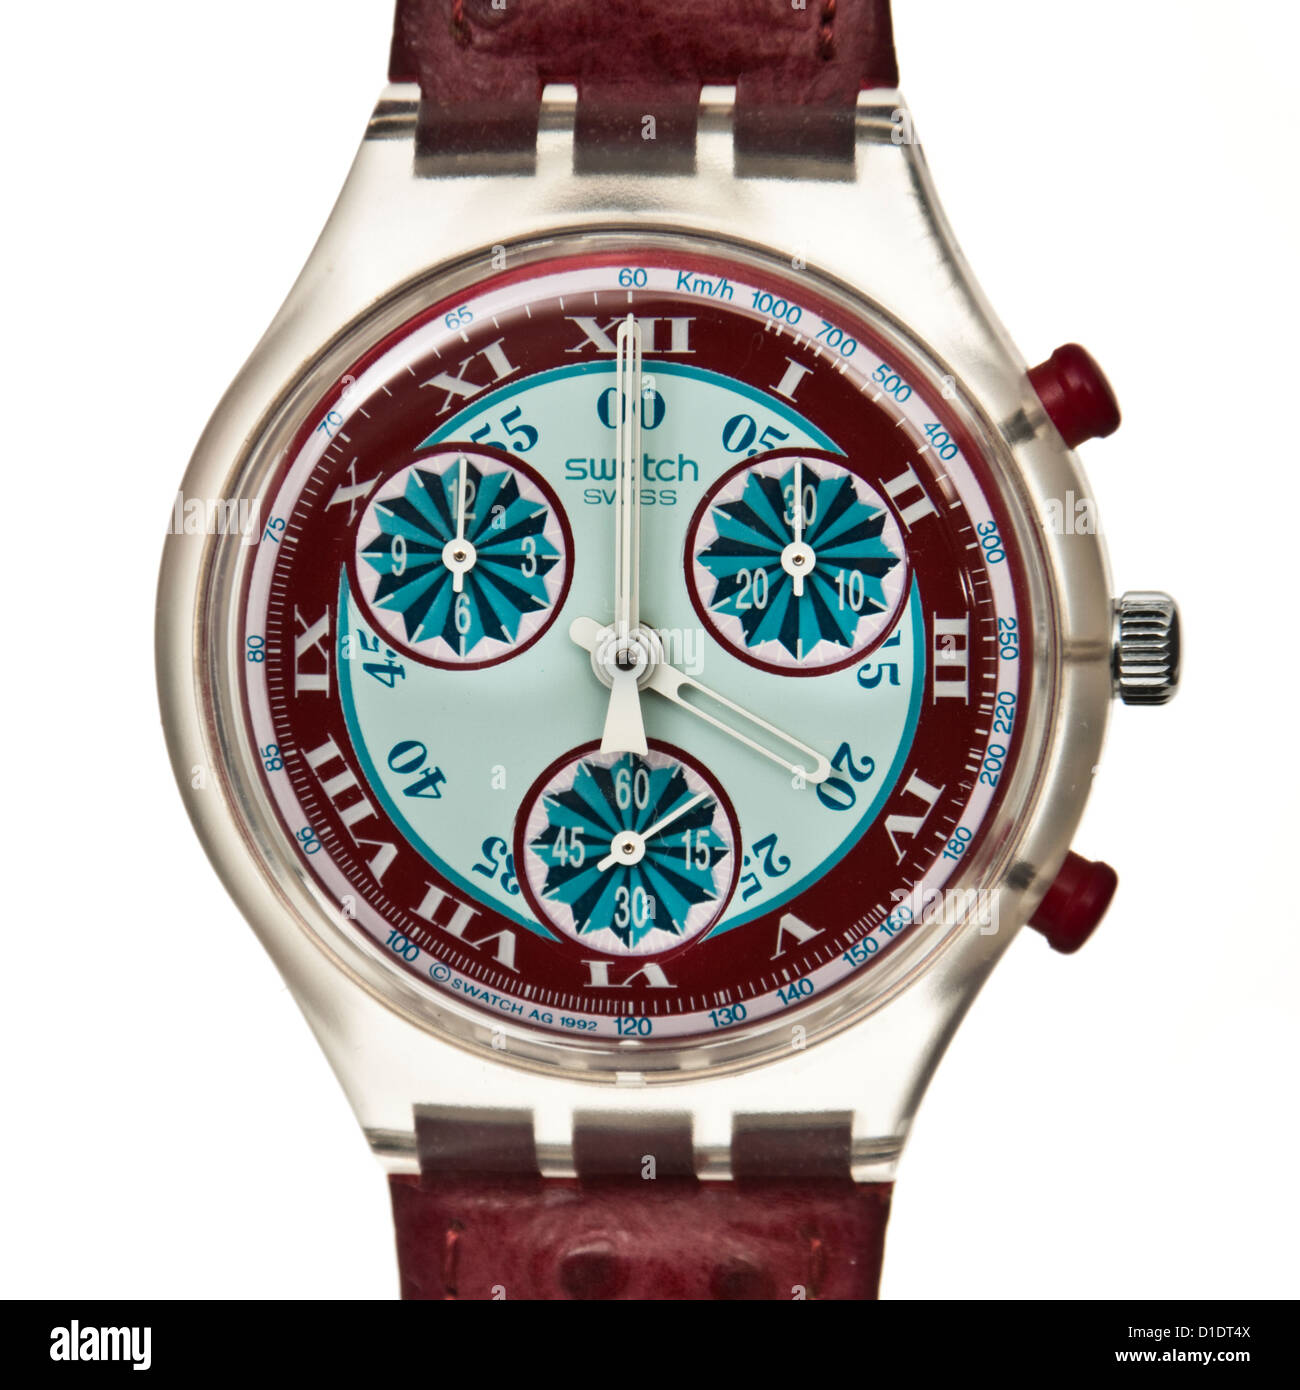 Swatch 'Windmill' chronograph watch (SCK103) from the Fall / Winter 1993 collection - Stock Image